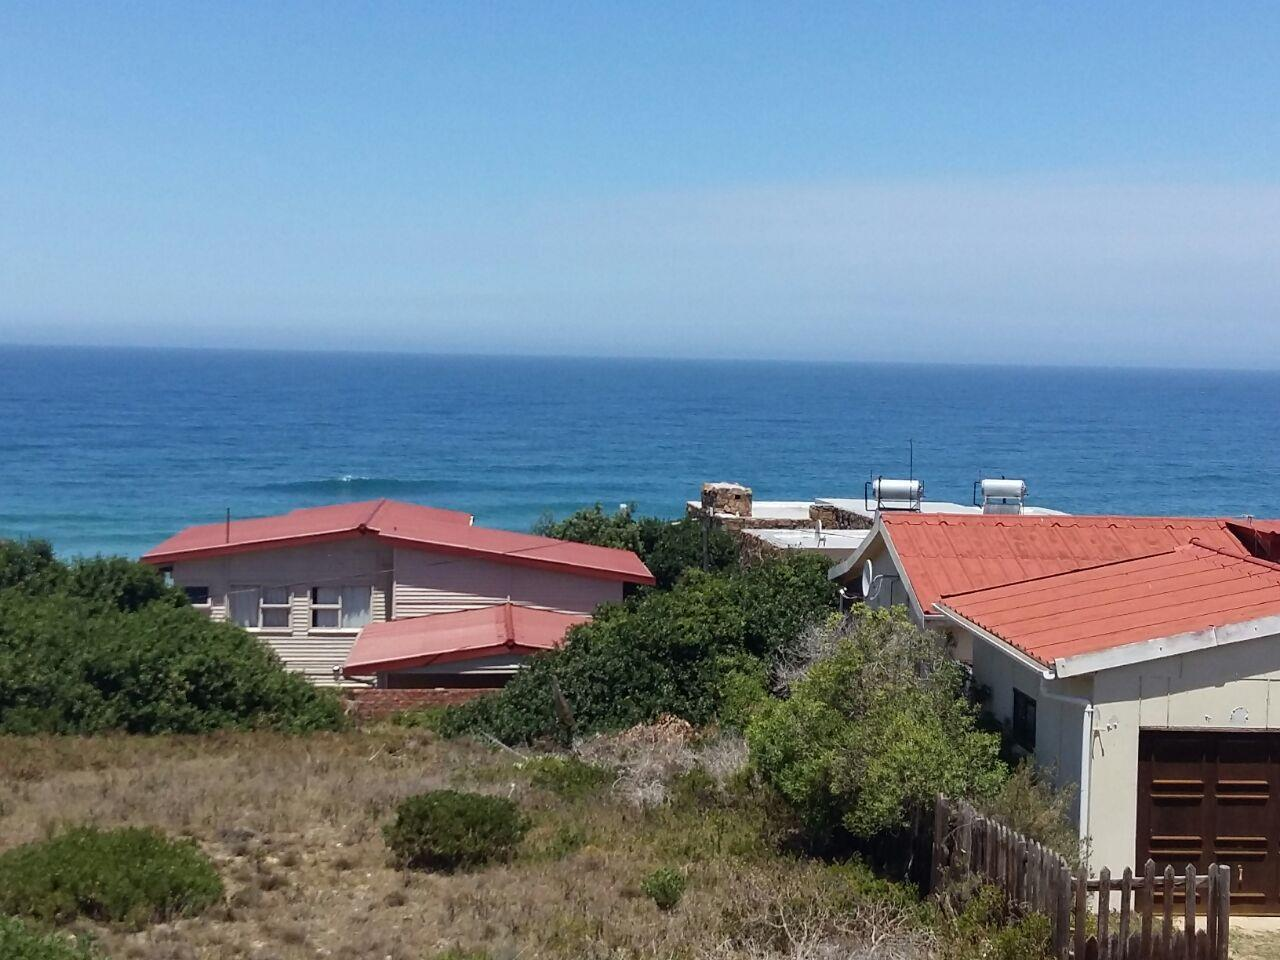 Property & Real Estate Sales - House in Reebok, Grootbrak Rivier, Mossel Bay, South Africa